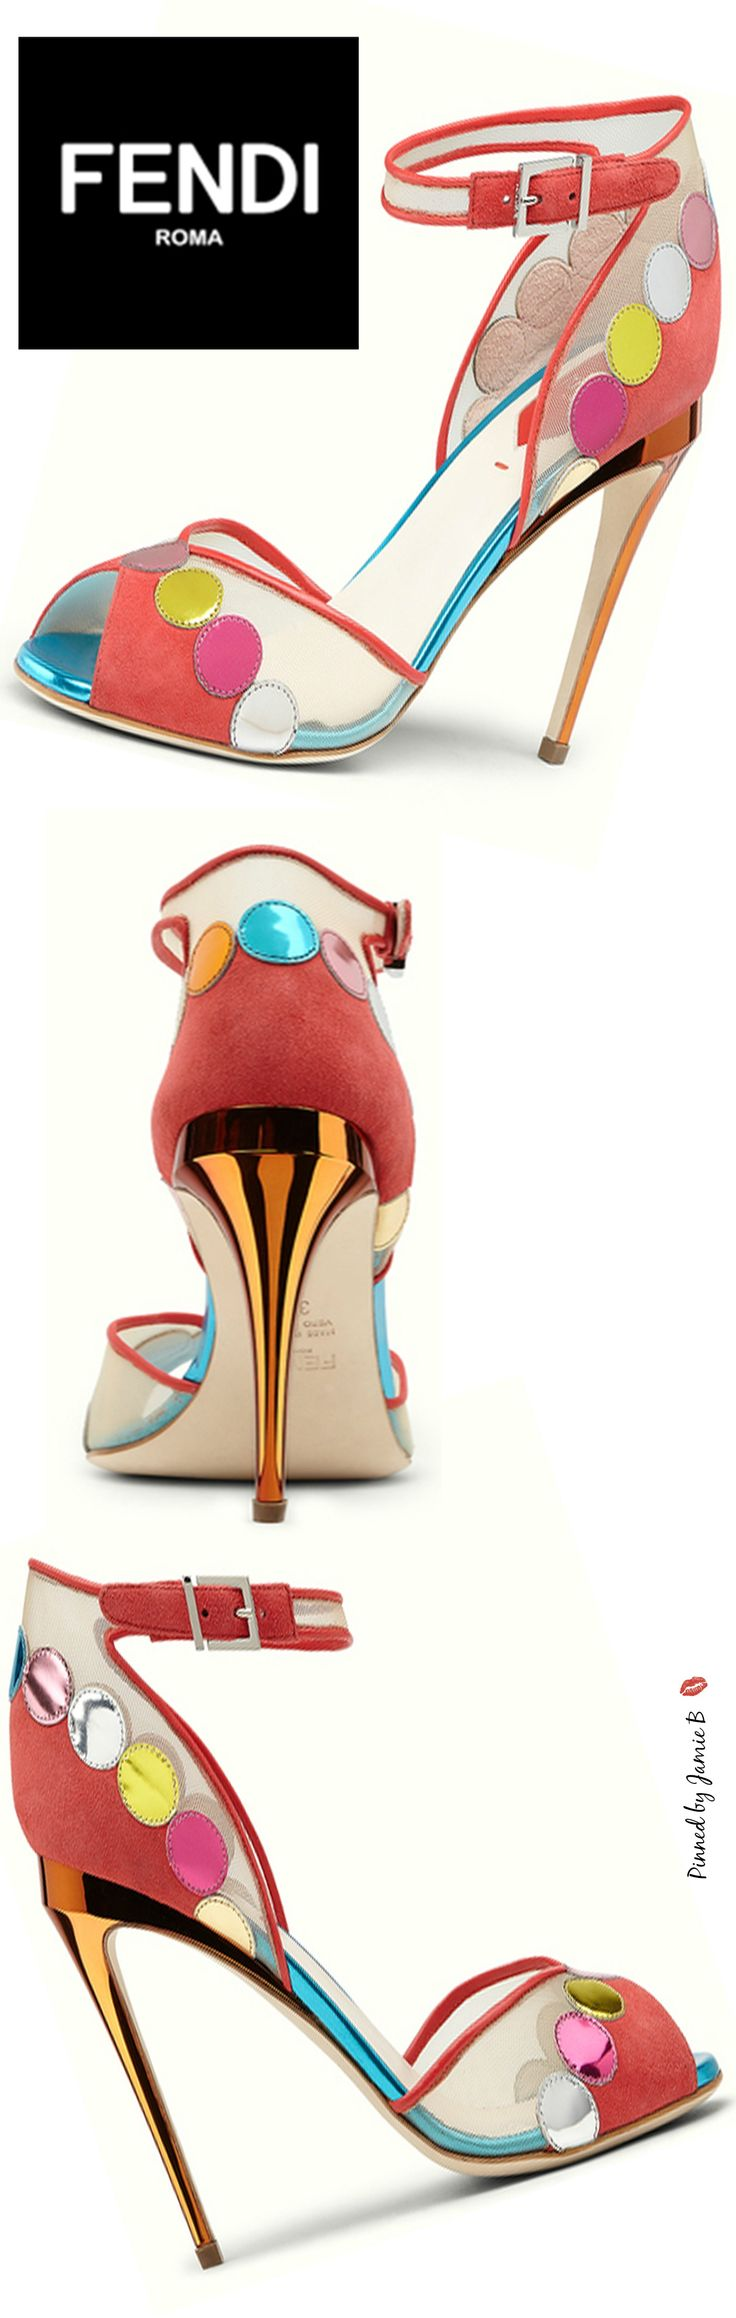 Fendi | Multi-Colour Sandals | shoes 1 Yasemin Aksu